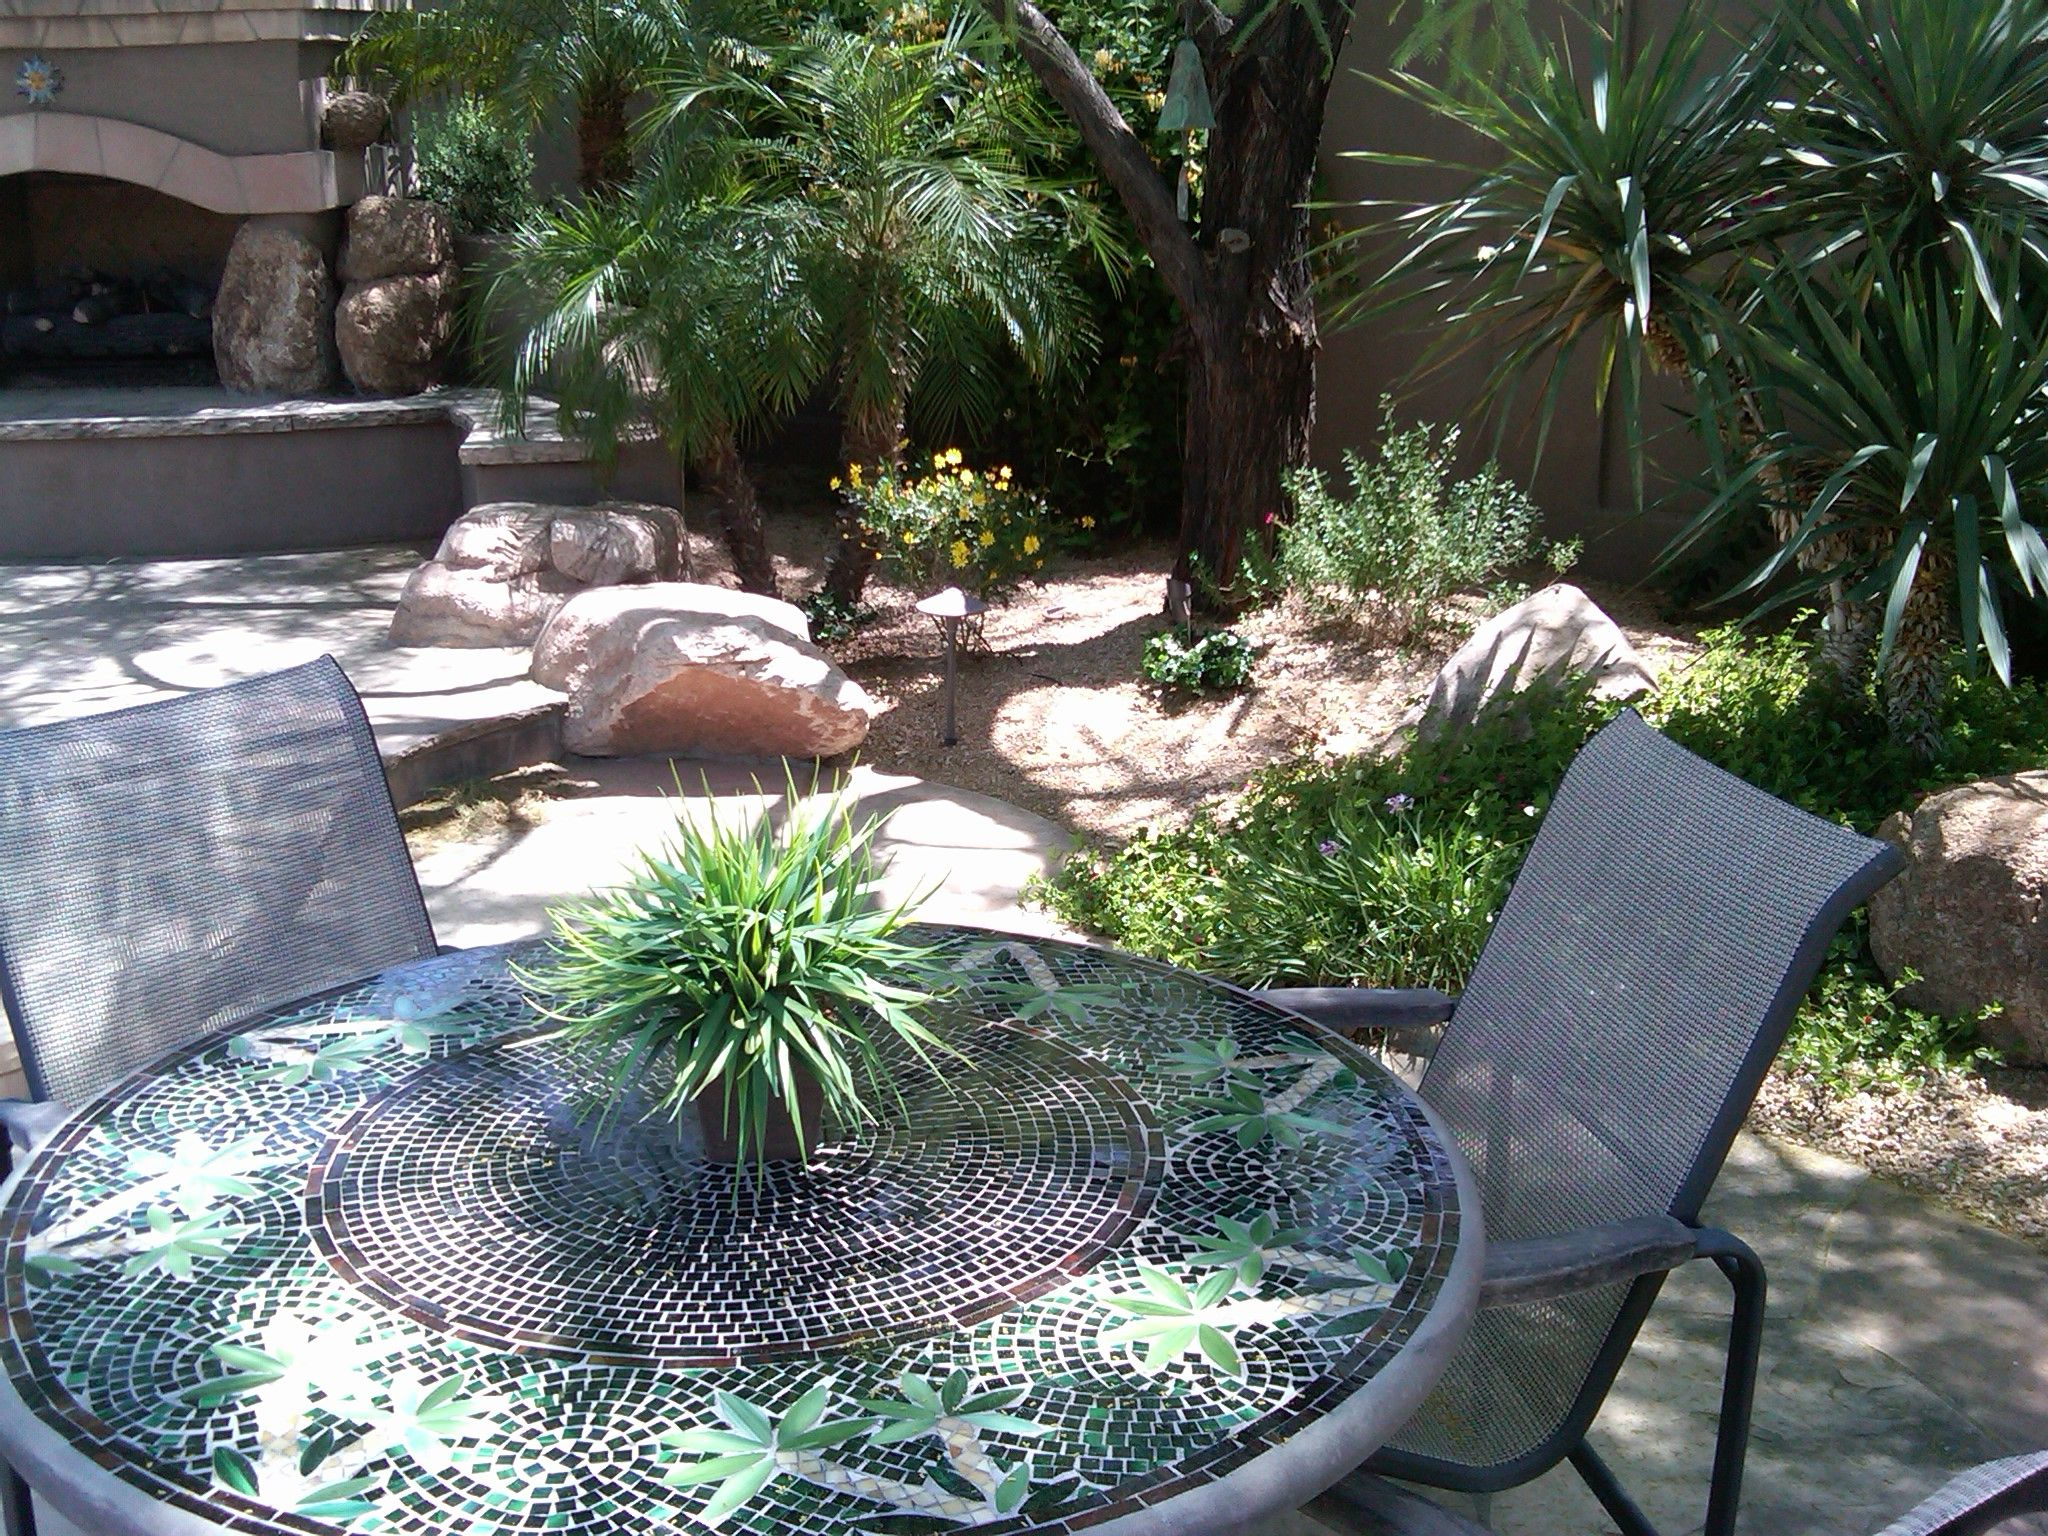 Landscaping backyard landscaping ideas arizona Backyard landscape photos ideas